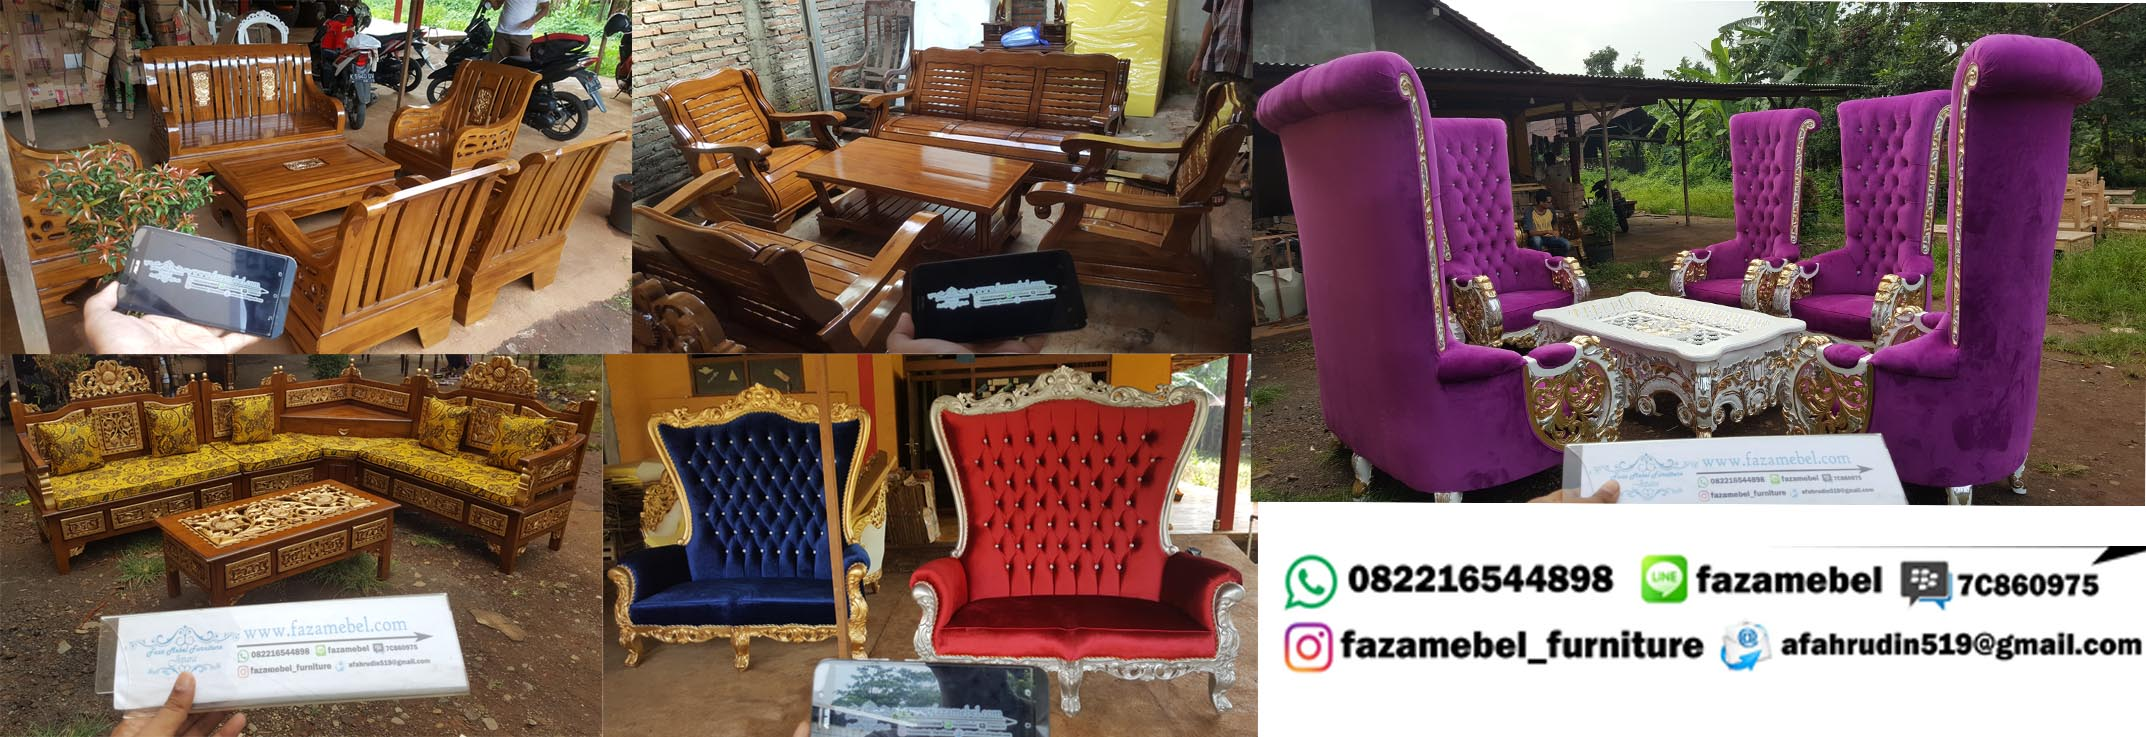 Mebel Jepara I Furniture Jepara I Faza Mebel Furniture Jepara [ Spesialis Original Supplier Mebel Jepara : Best Royal Luxury Produk Furniture : Elegan Minimalis Mewah Antik Clasik & Berkualitas ]